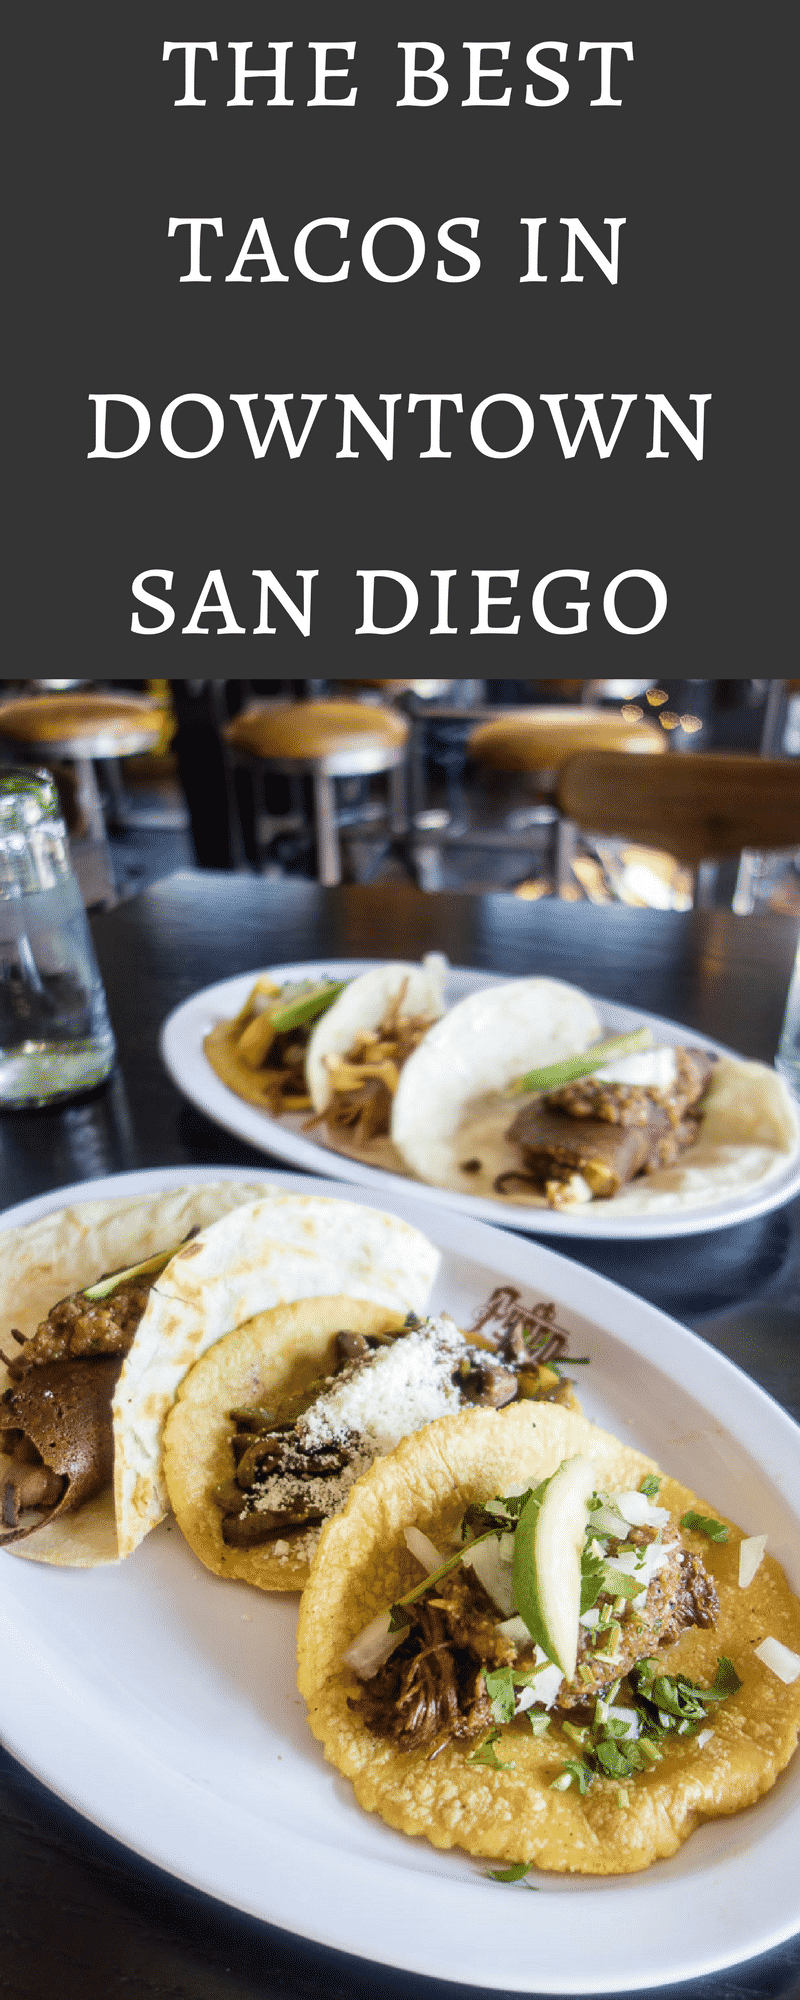 Learn where to find the best places to get tacos in downtown San Diego. From carne asada and al pastor to poblano and nopal (cactus), there is something for everyone!best tacos san diego | best mexican food san diego | best restaurants san diego | downtown san diego restaurants | best food of san diego | visiting san diego | san diego tourism | eating in san diego